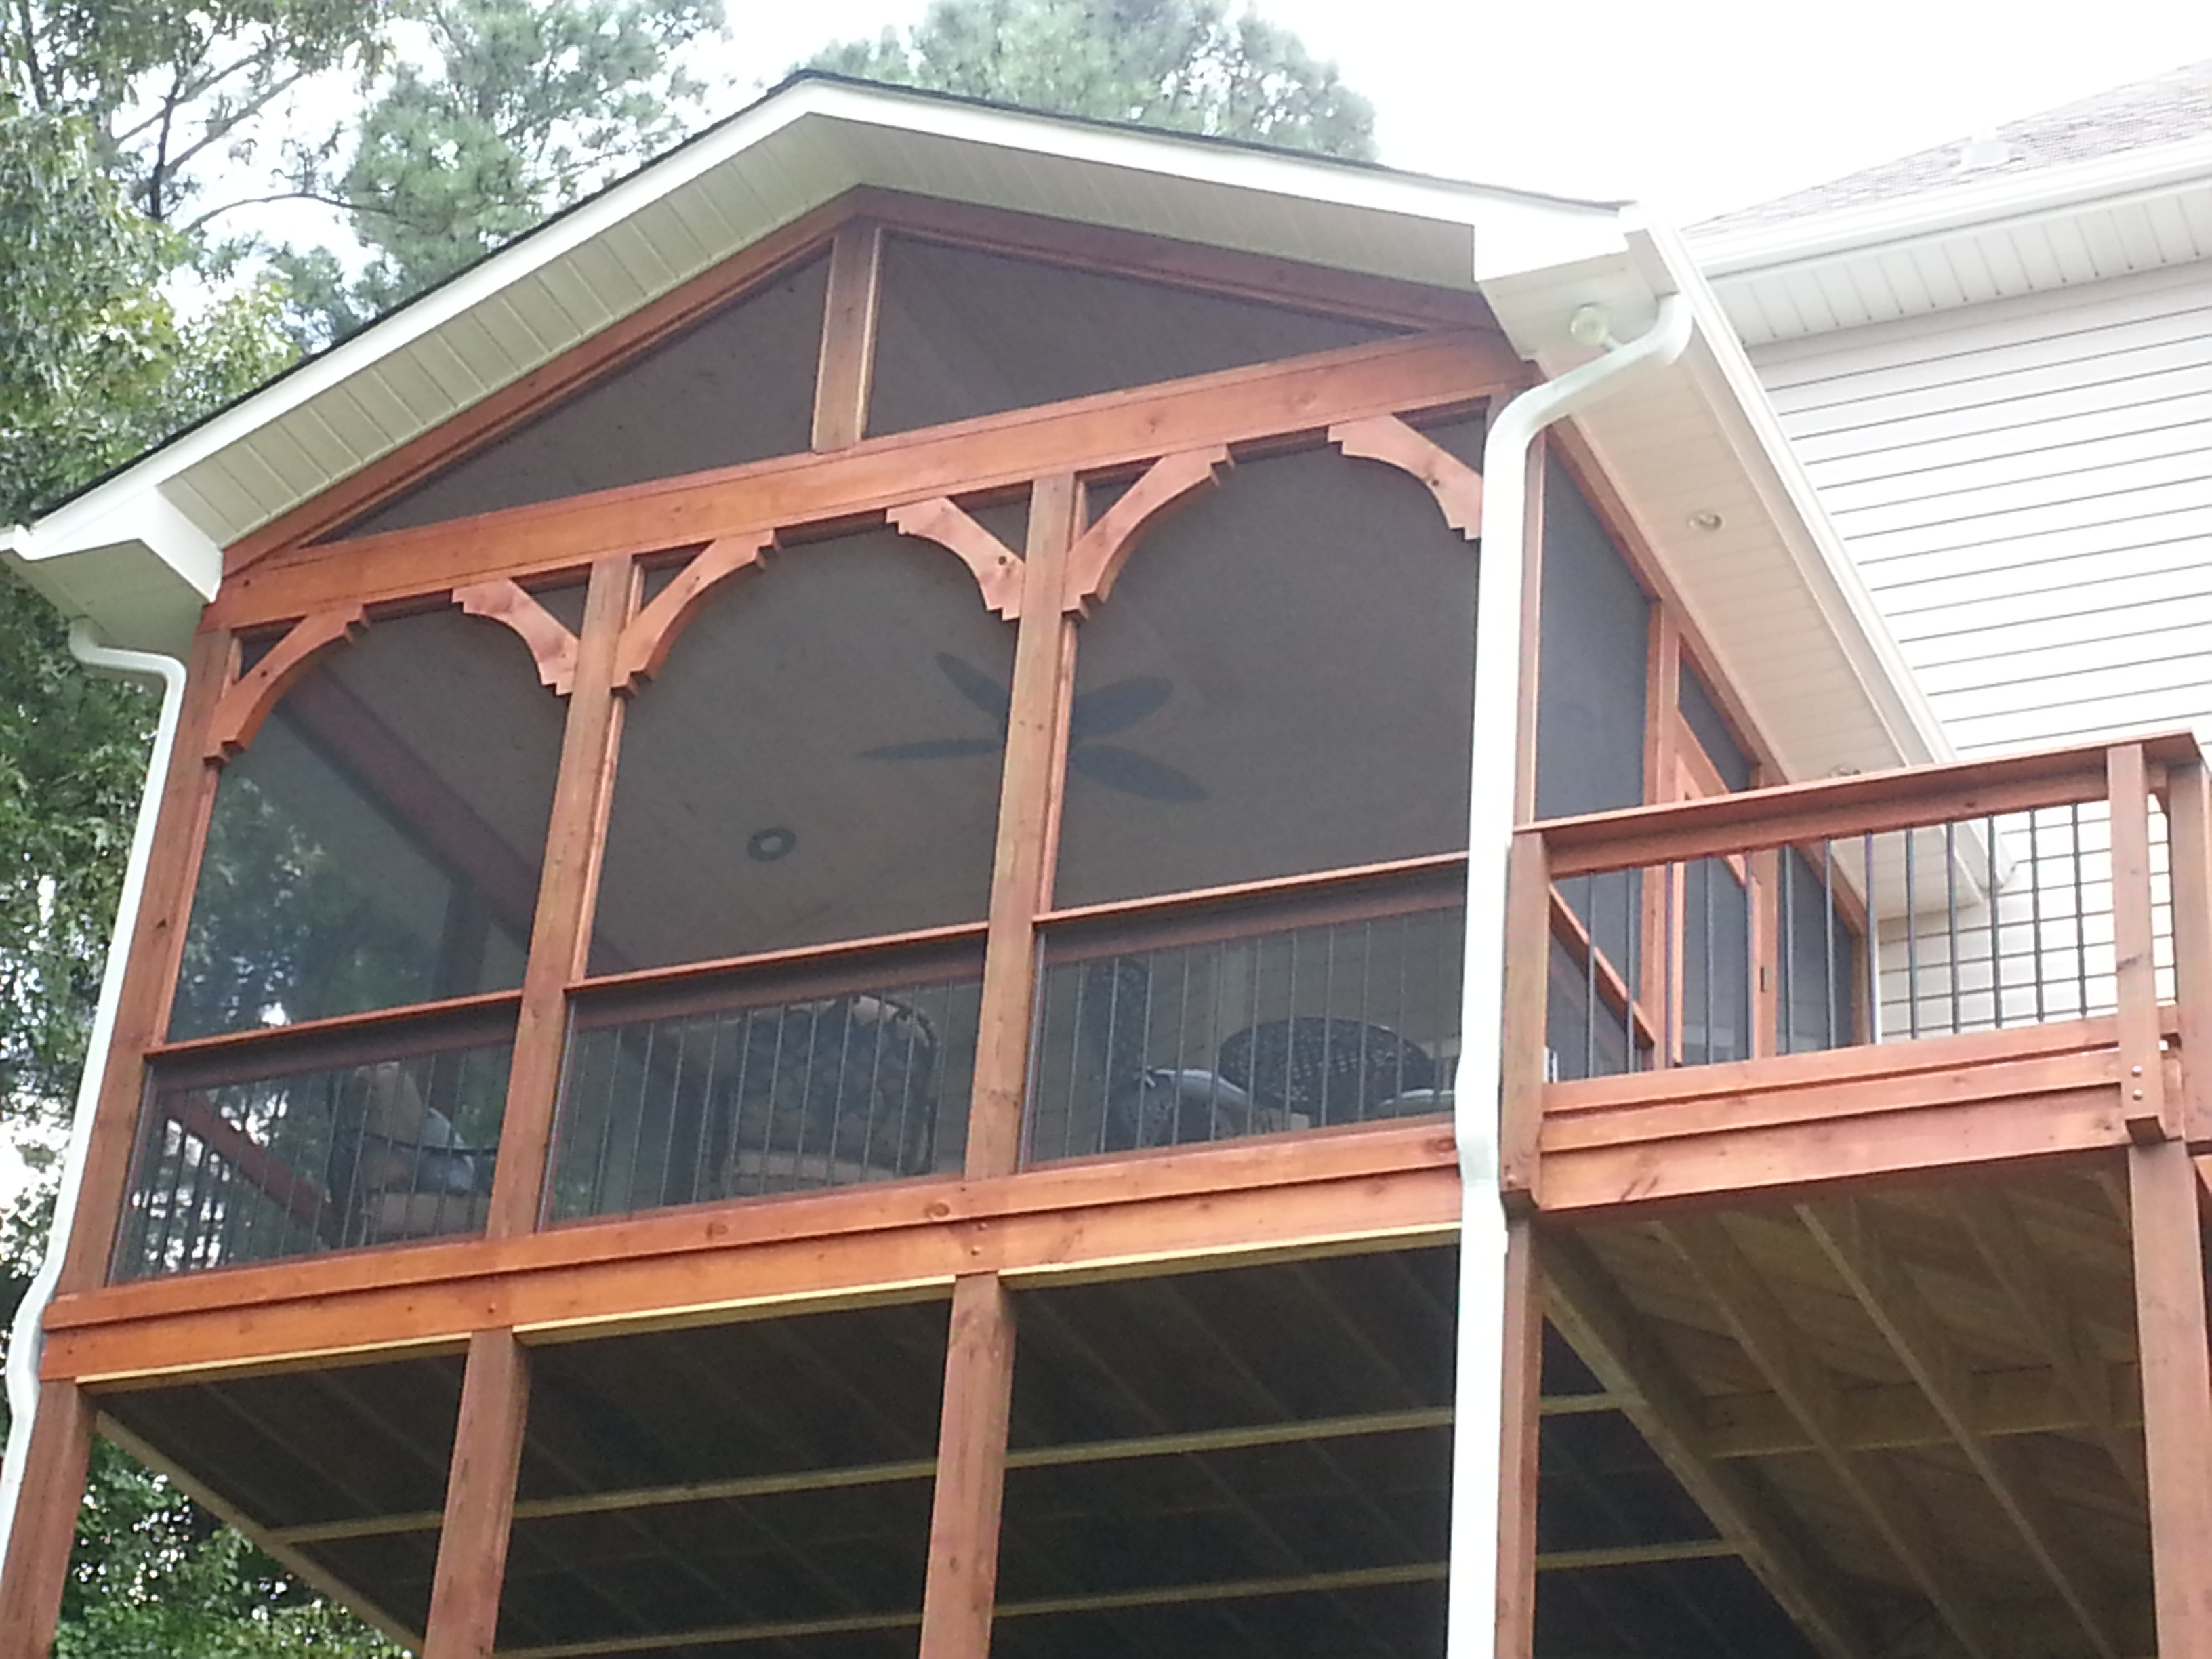 owners gable an see highland porch maryland screen custom is porches roof screened or these chose open that outdoor builder what question md the category covered with decks